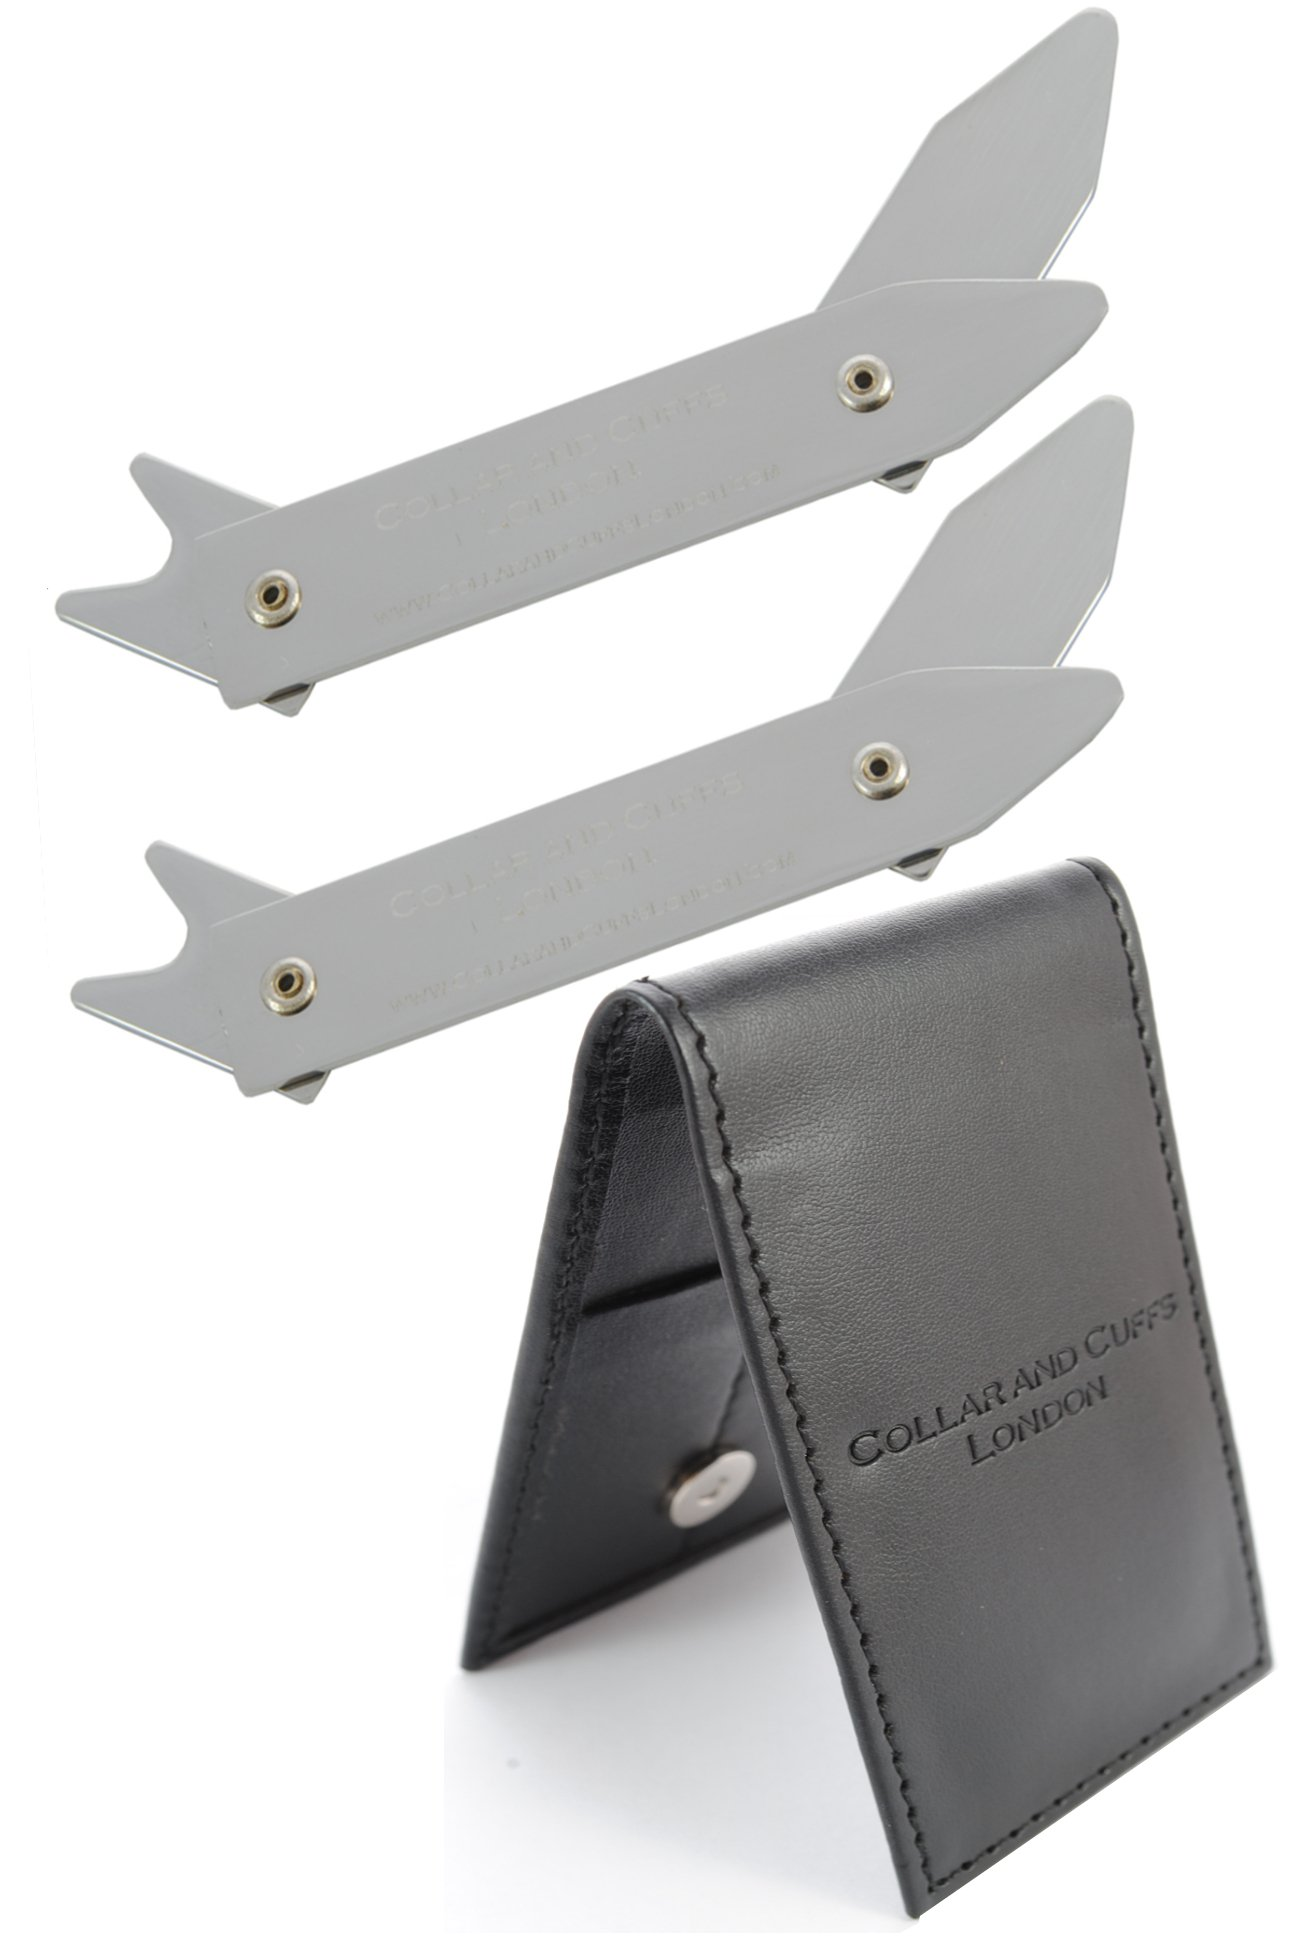 COLLAR AND CUFFS LONDON - ADJUSTABLE MULTI SIZE Metal Shirt Collar Stiffeners - Adjusts to 2'' 2.35'' 2.5'' 2.8'' - Silver Colour - With Presentation Gift Wallet - 1 pair by COLLAR AND CUFFS LONDON